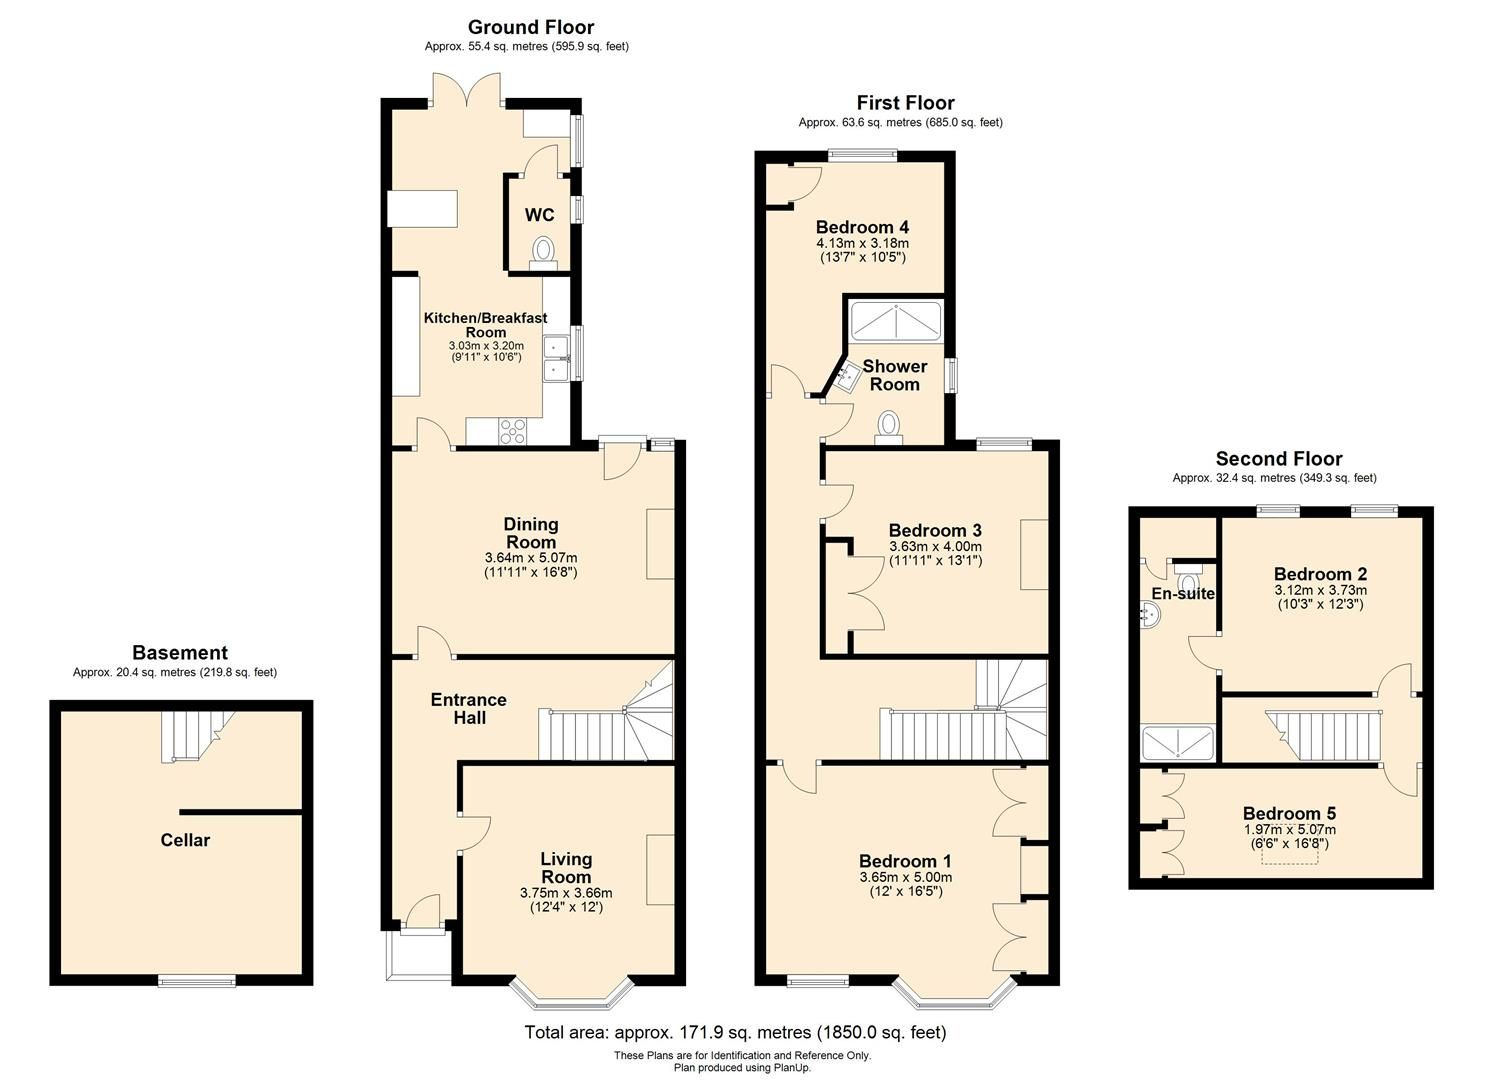 5 bed terraced for sale - Property Floorplan